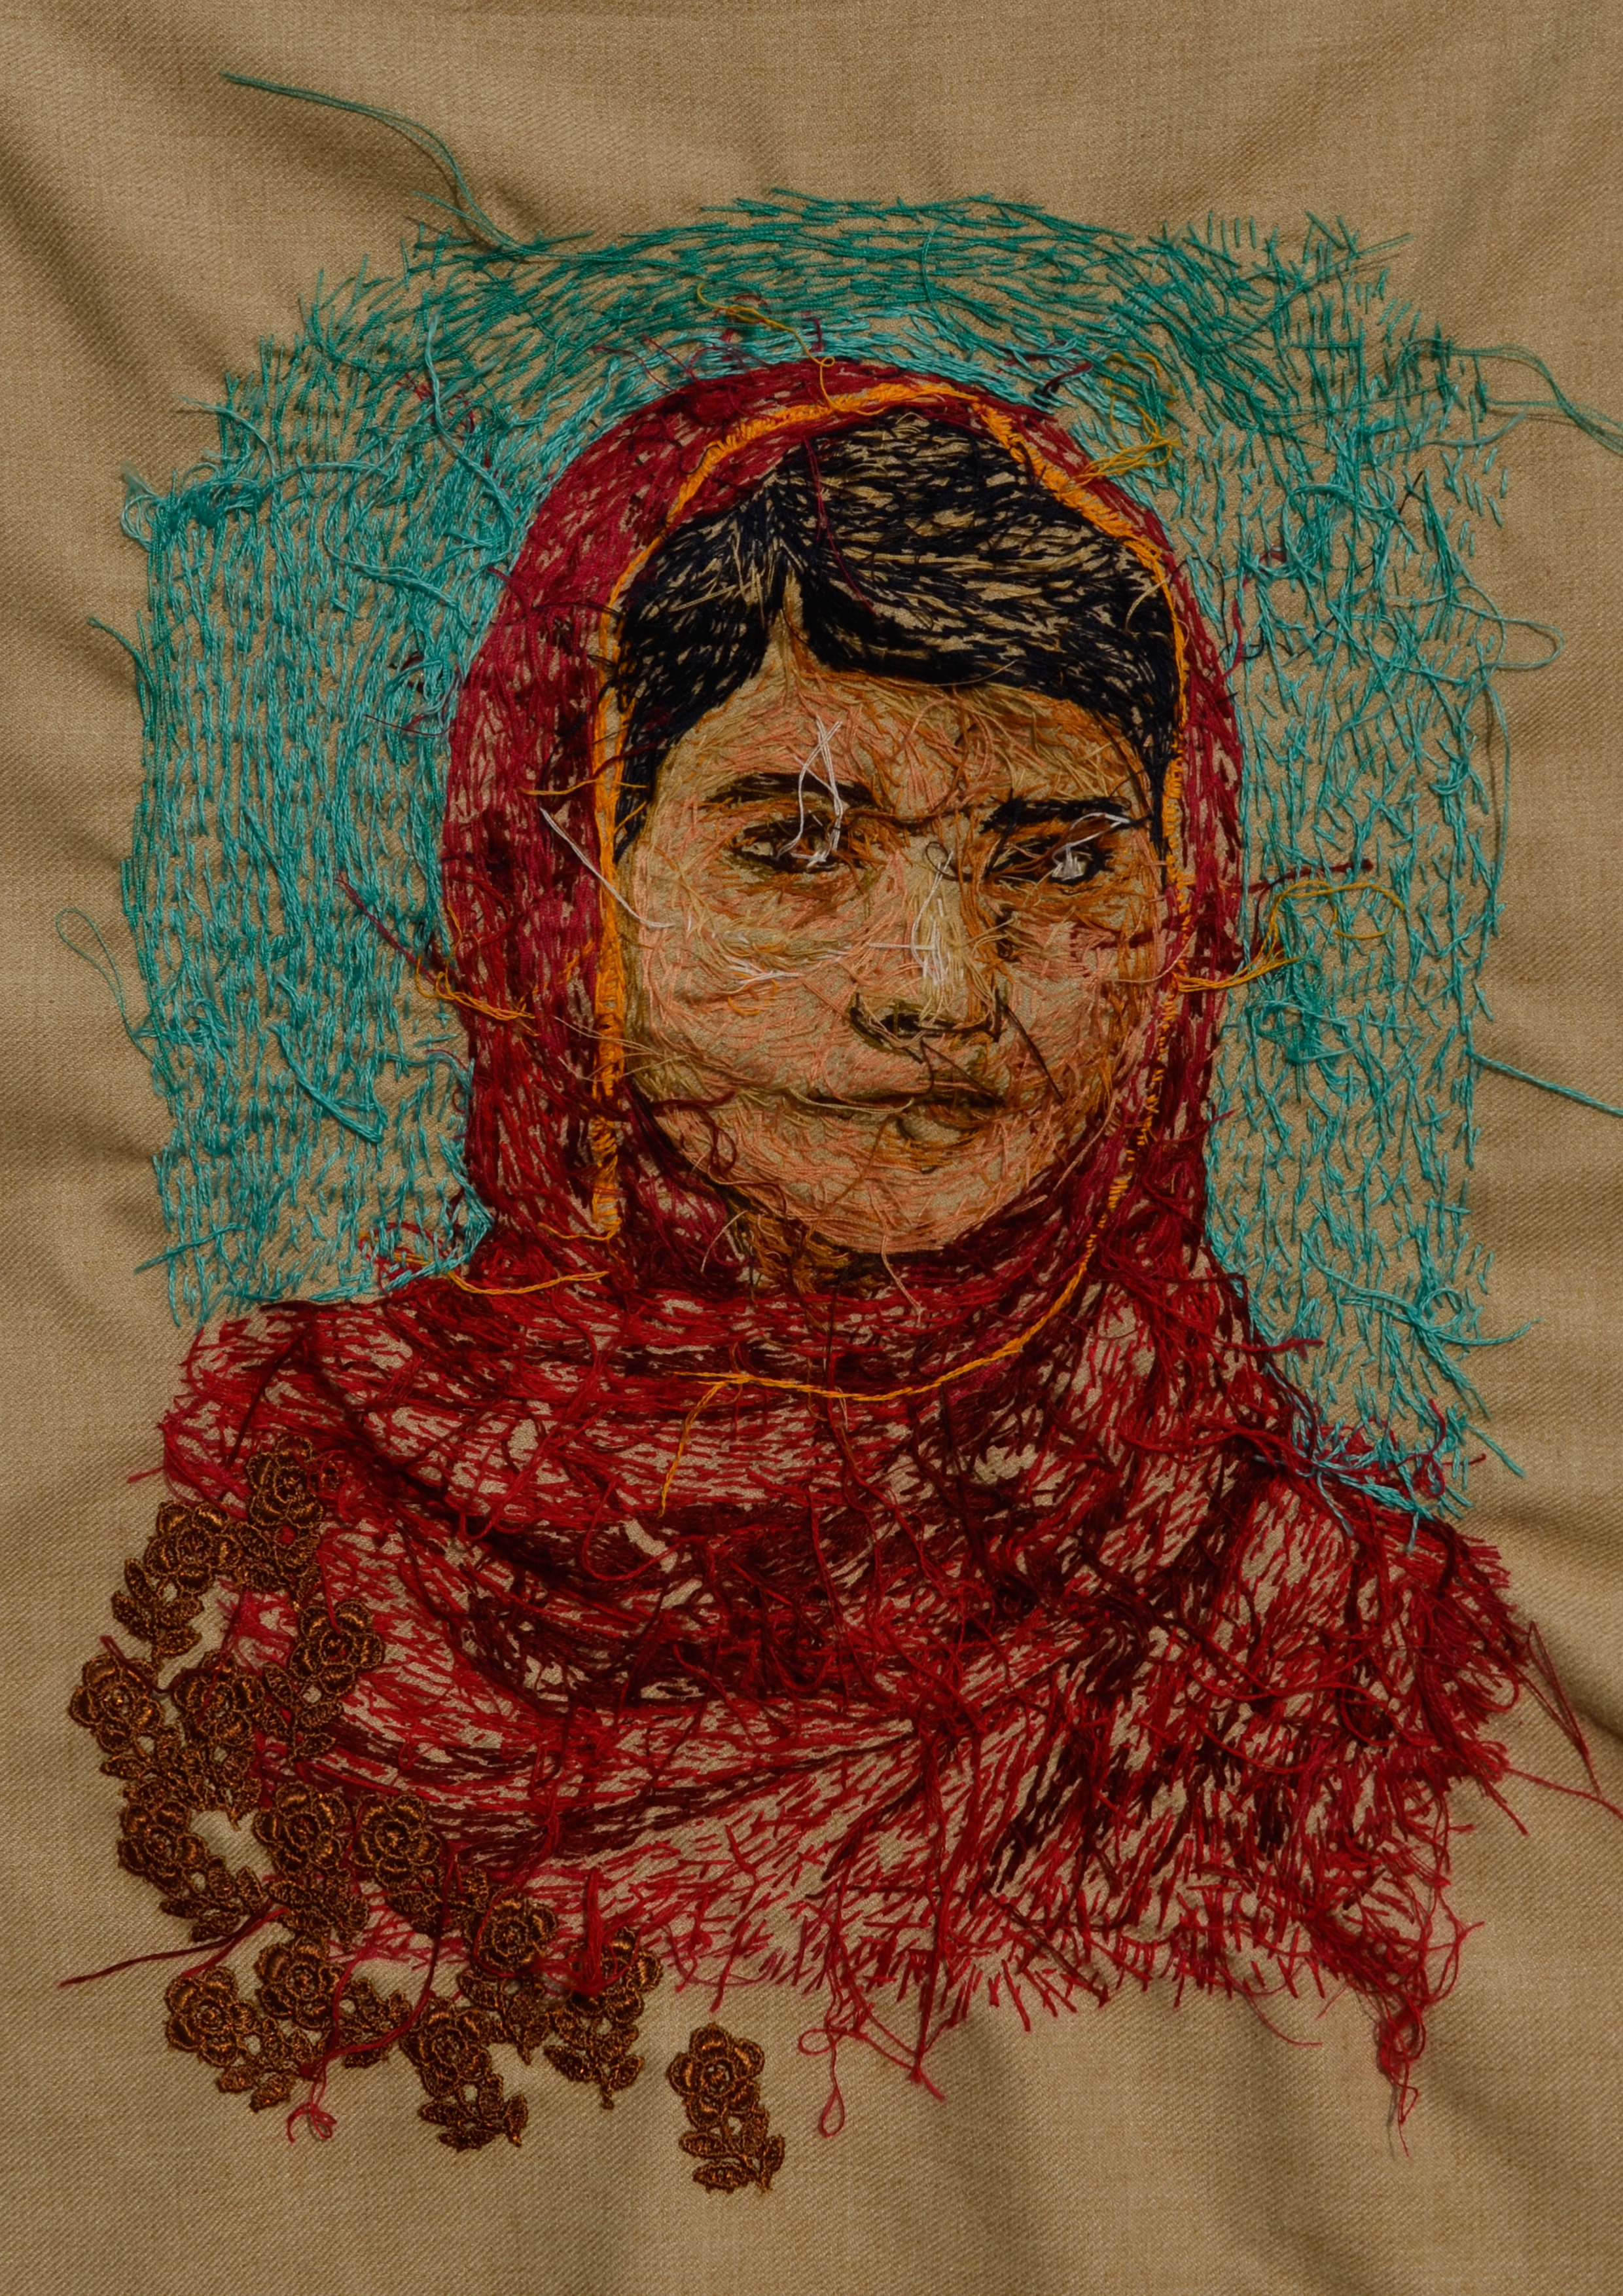 Untitled, 2014   Embroidery on Fabric   20 x 16in.